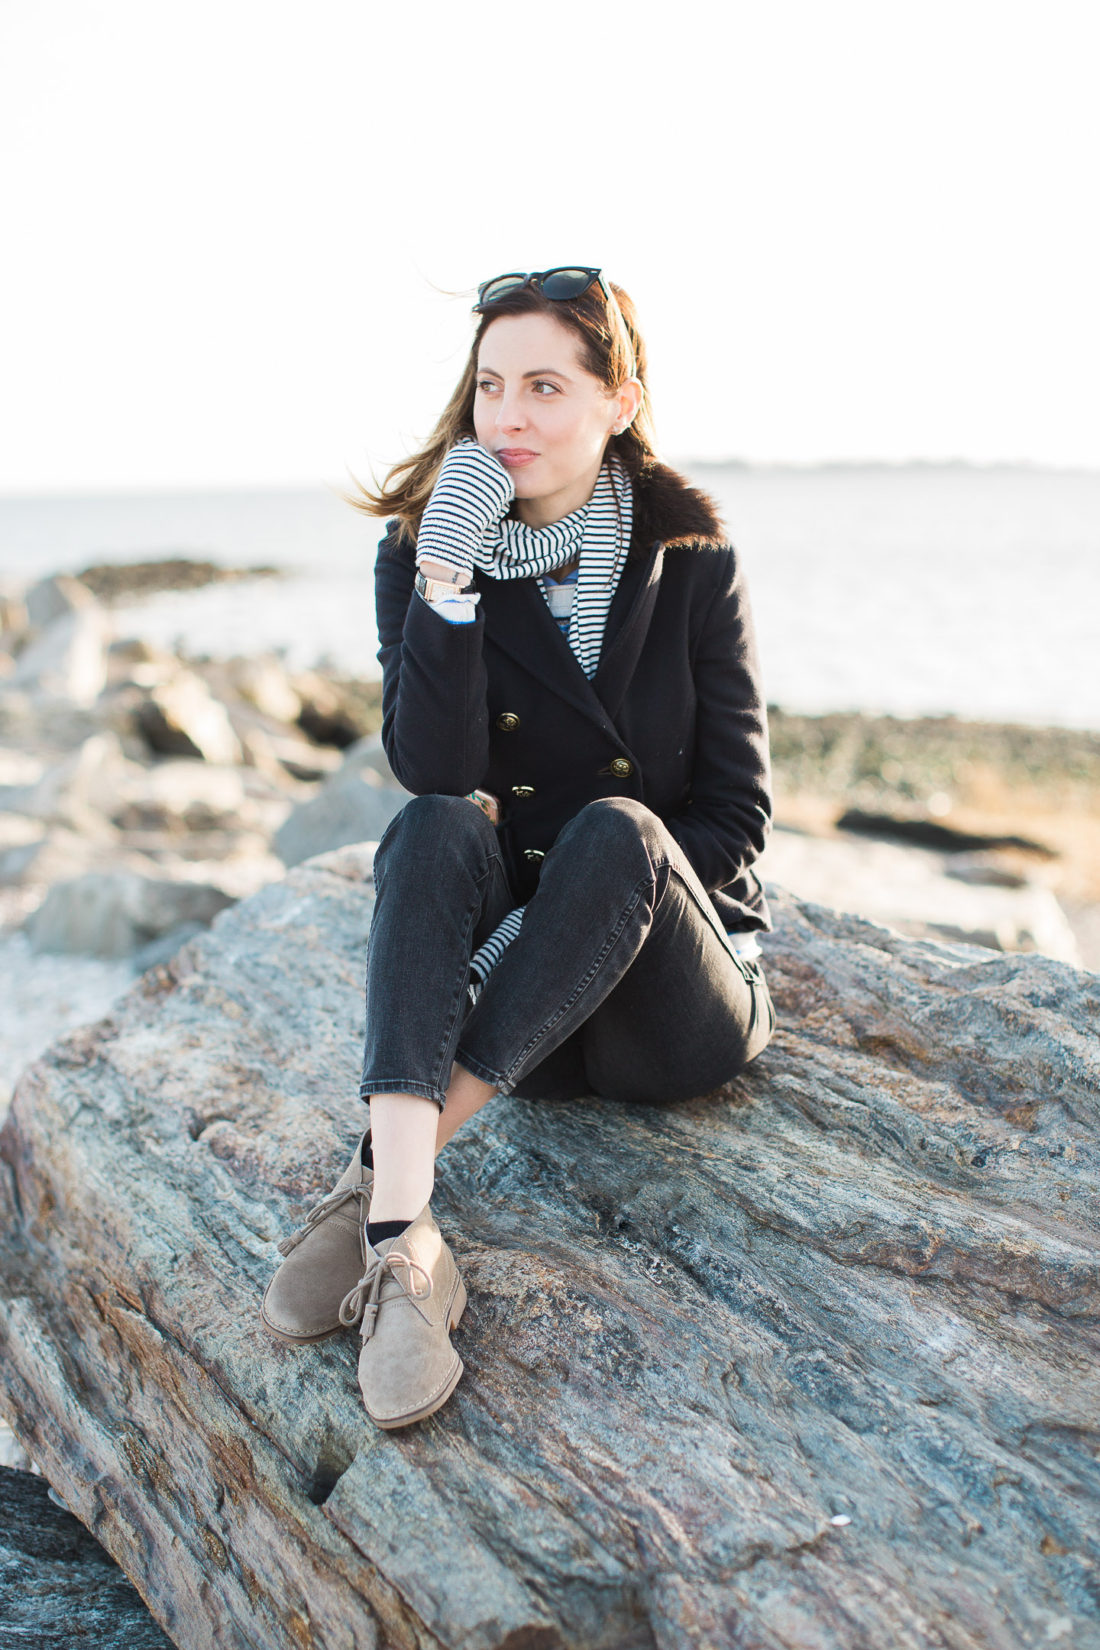 Eva Amurri Martino sits on a boulder on the beach in Connecticut with the long island sound behind her